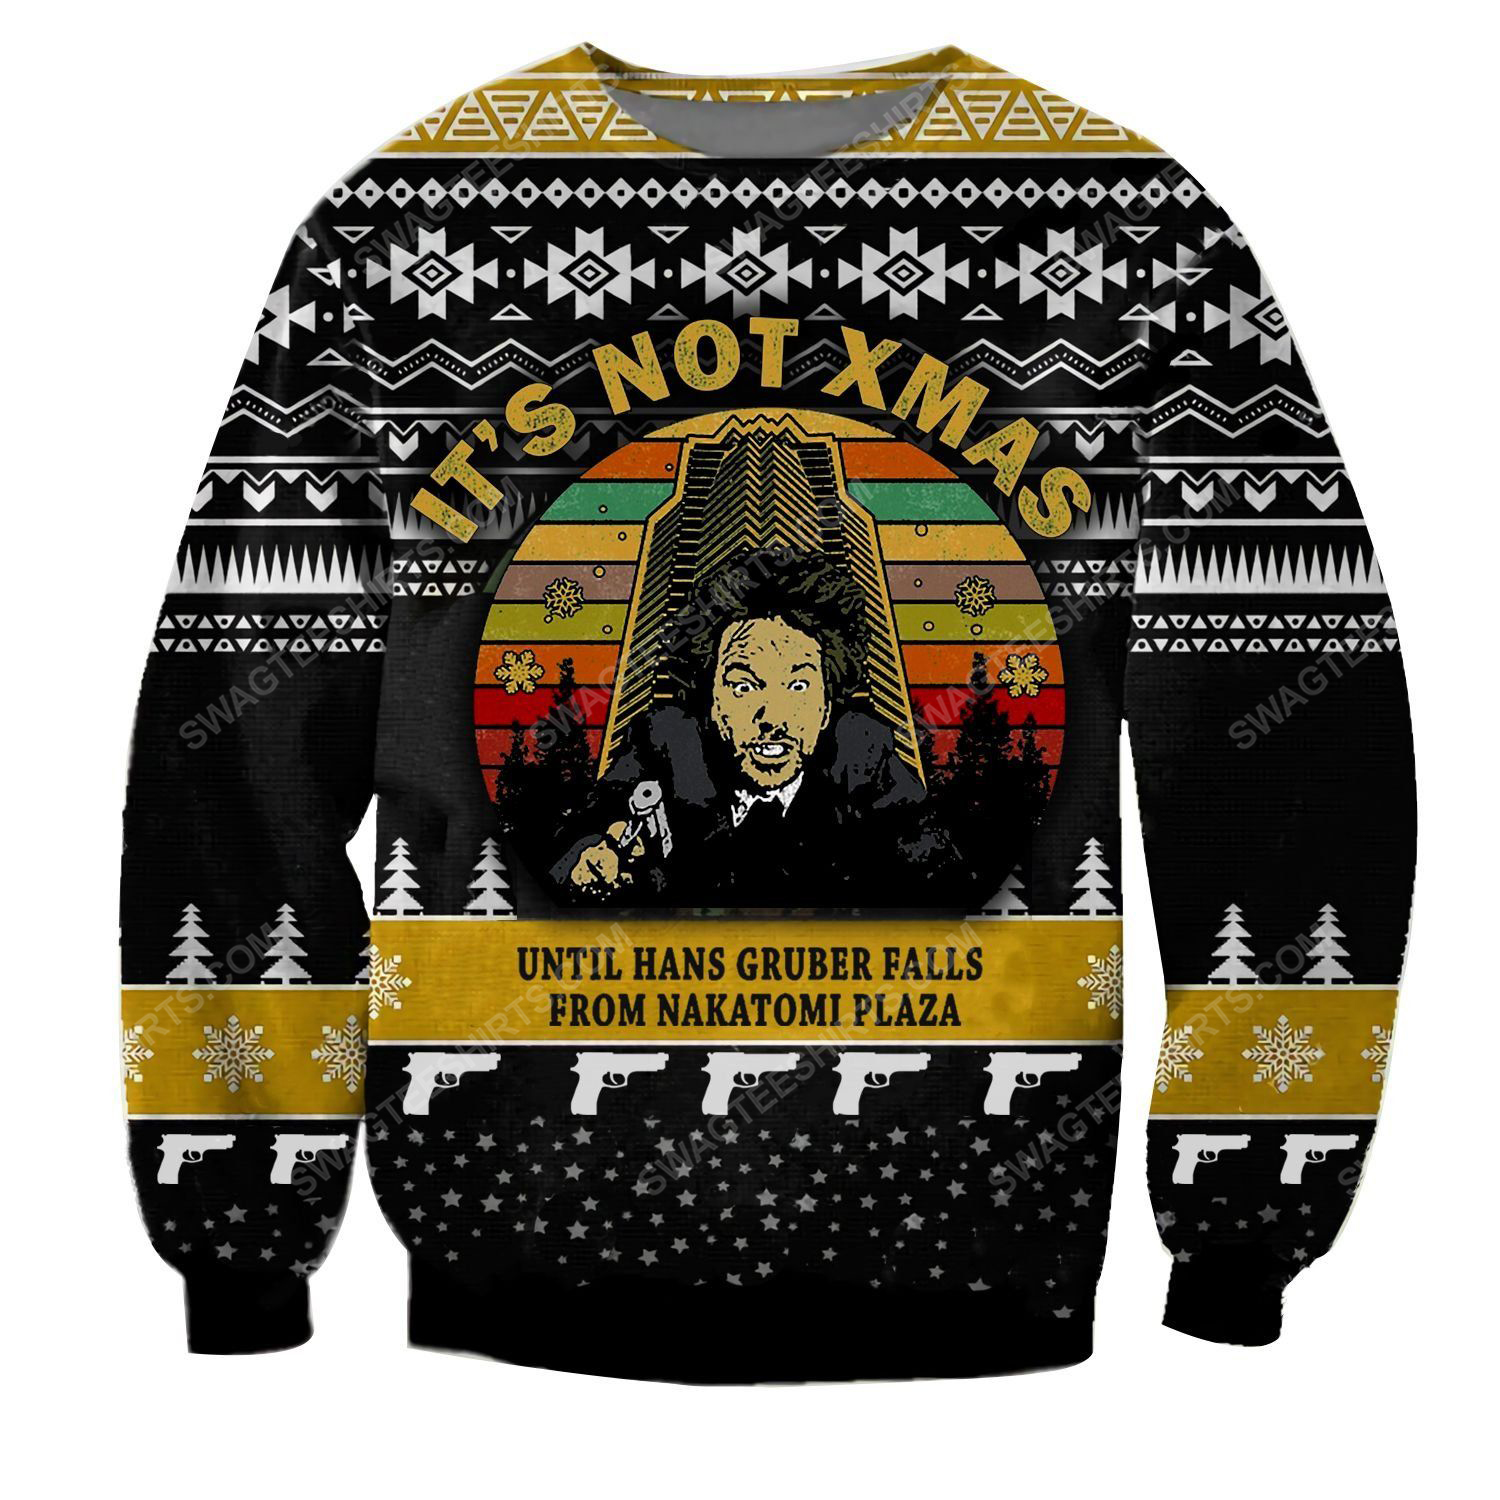 It's not christmas until hans gruber falls from nakatomi plaza ugly christmas sweater